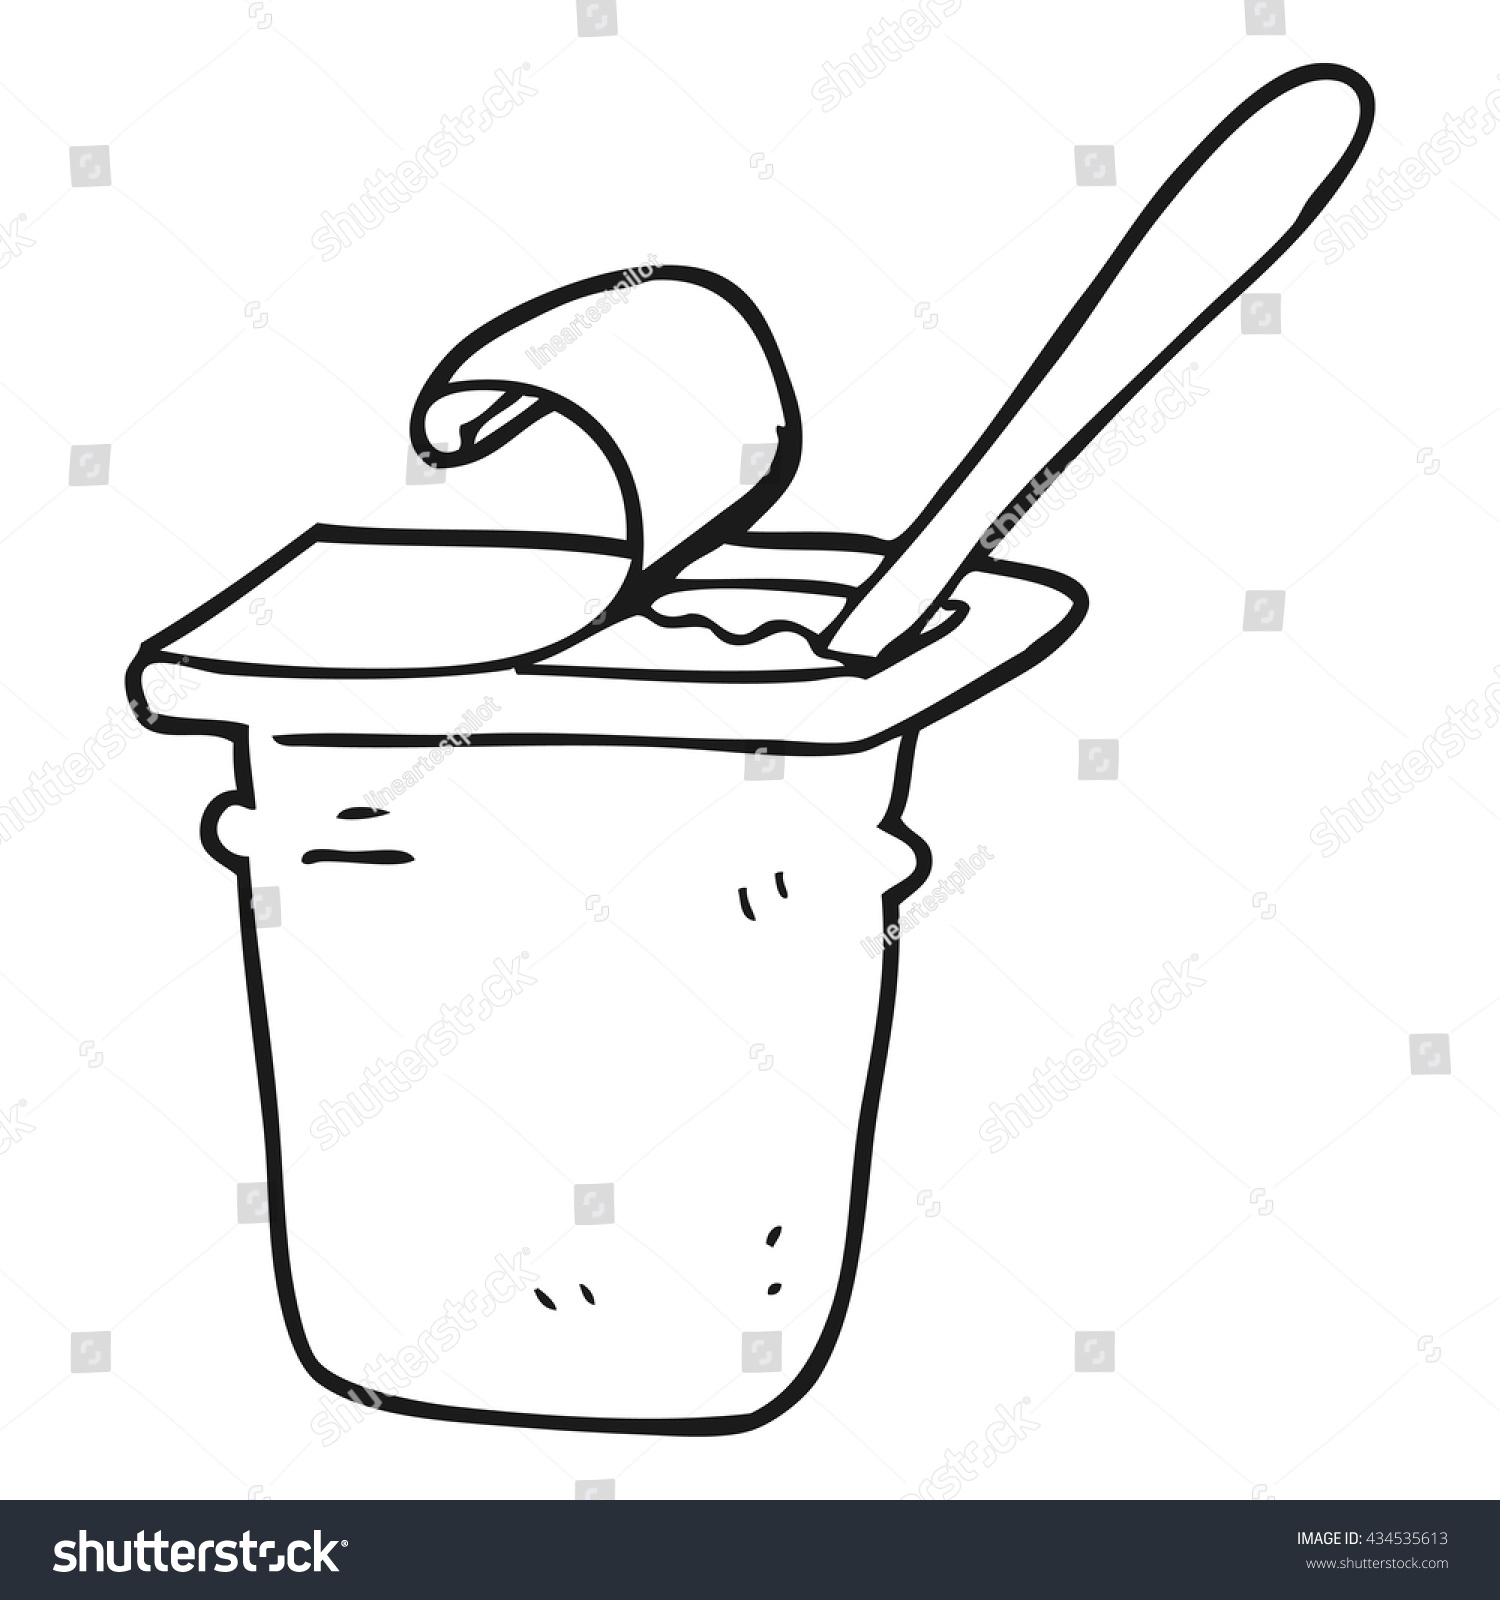 Yogurt Line Drawing : Freehand drawn black white cartoon yogurt stock vector